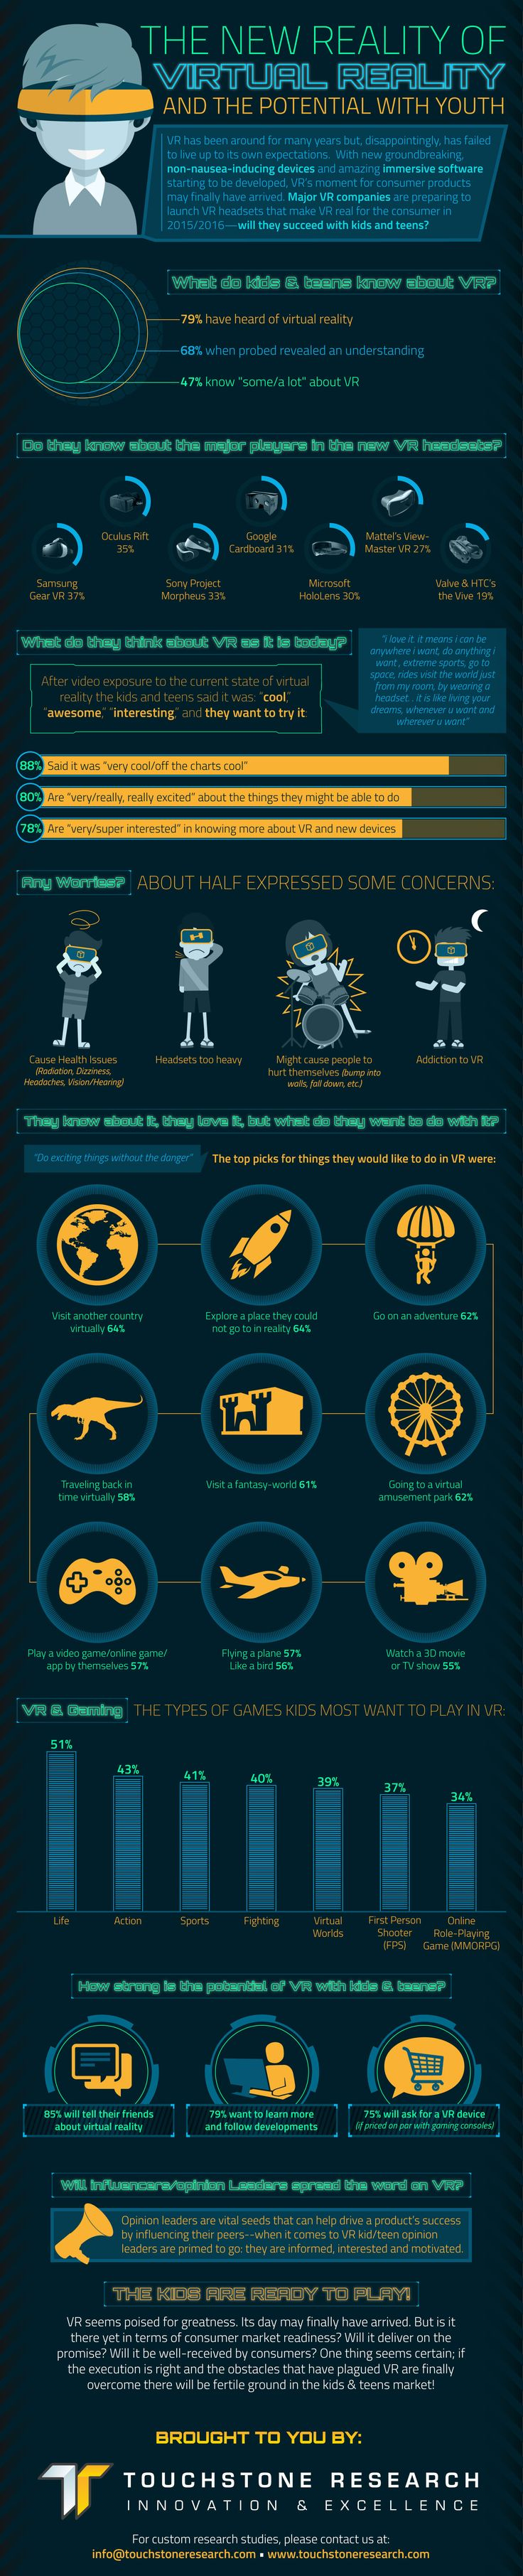 Infographic – The New Reality of Virtual Reality and the Potential with Youth  http://touchstoneresearch.com/infographic-the-new-reality-of-virtual-reality-and-the-potential-with-youth/